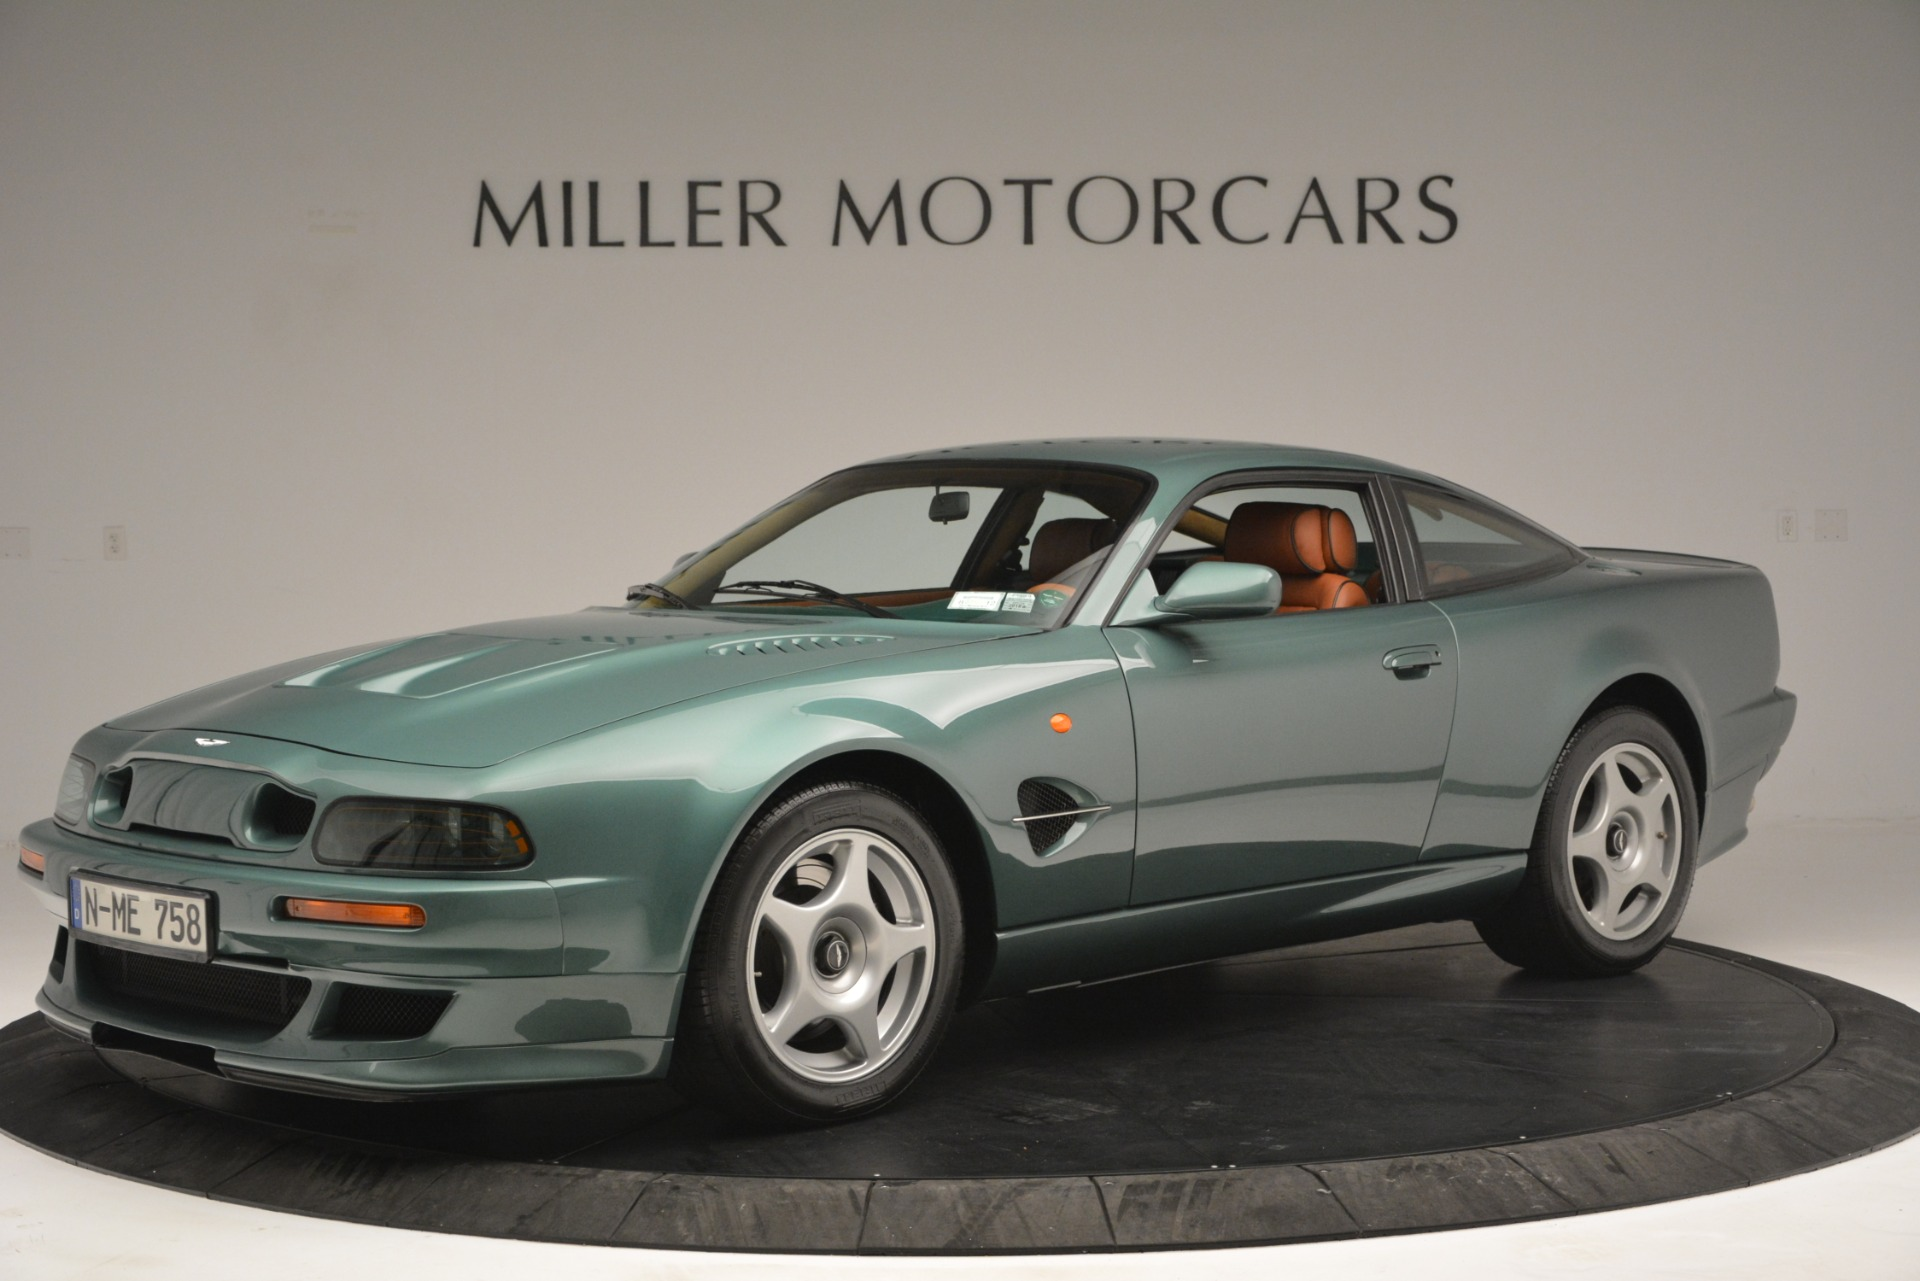 Used 1999 Aston Martin V8 Vantage Le Mans V600 Coupe for sale $550,000 at Pagani of Greenwich in Greenwich CT 06830 1